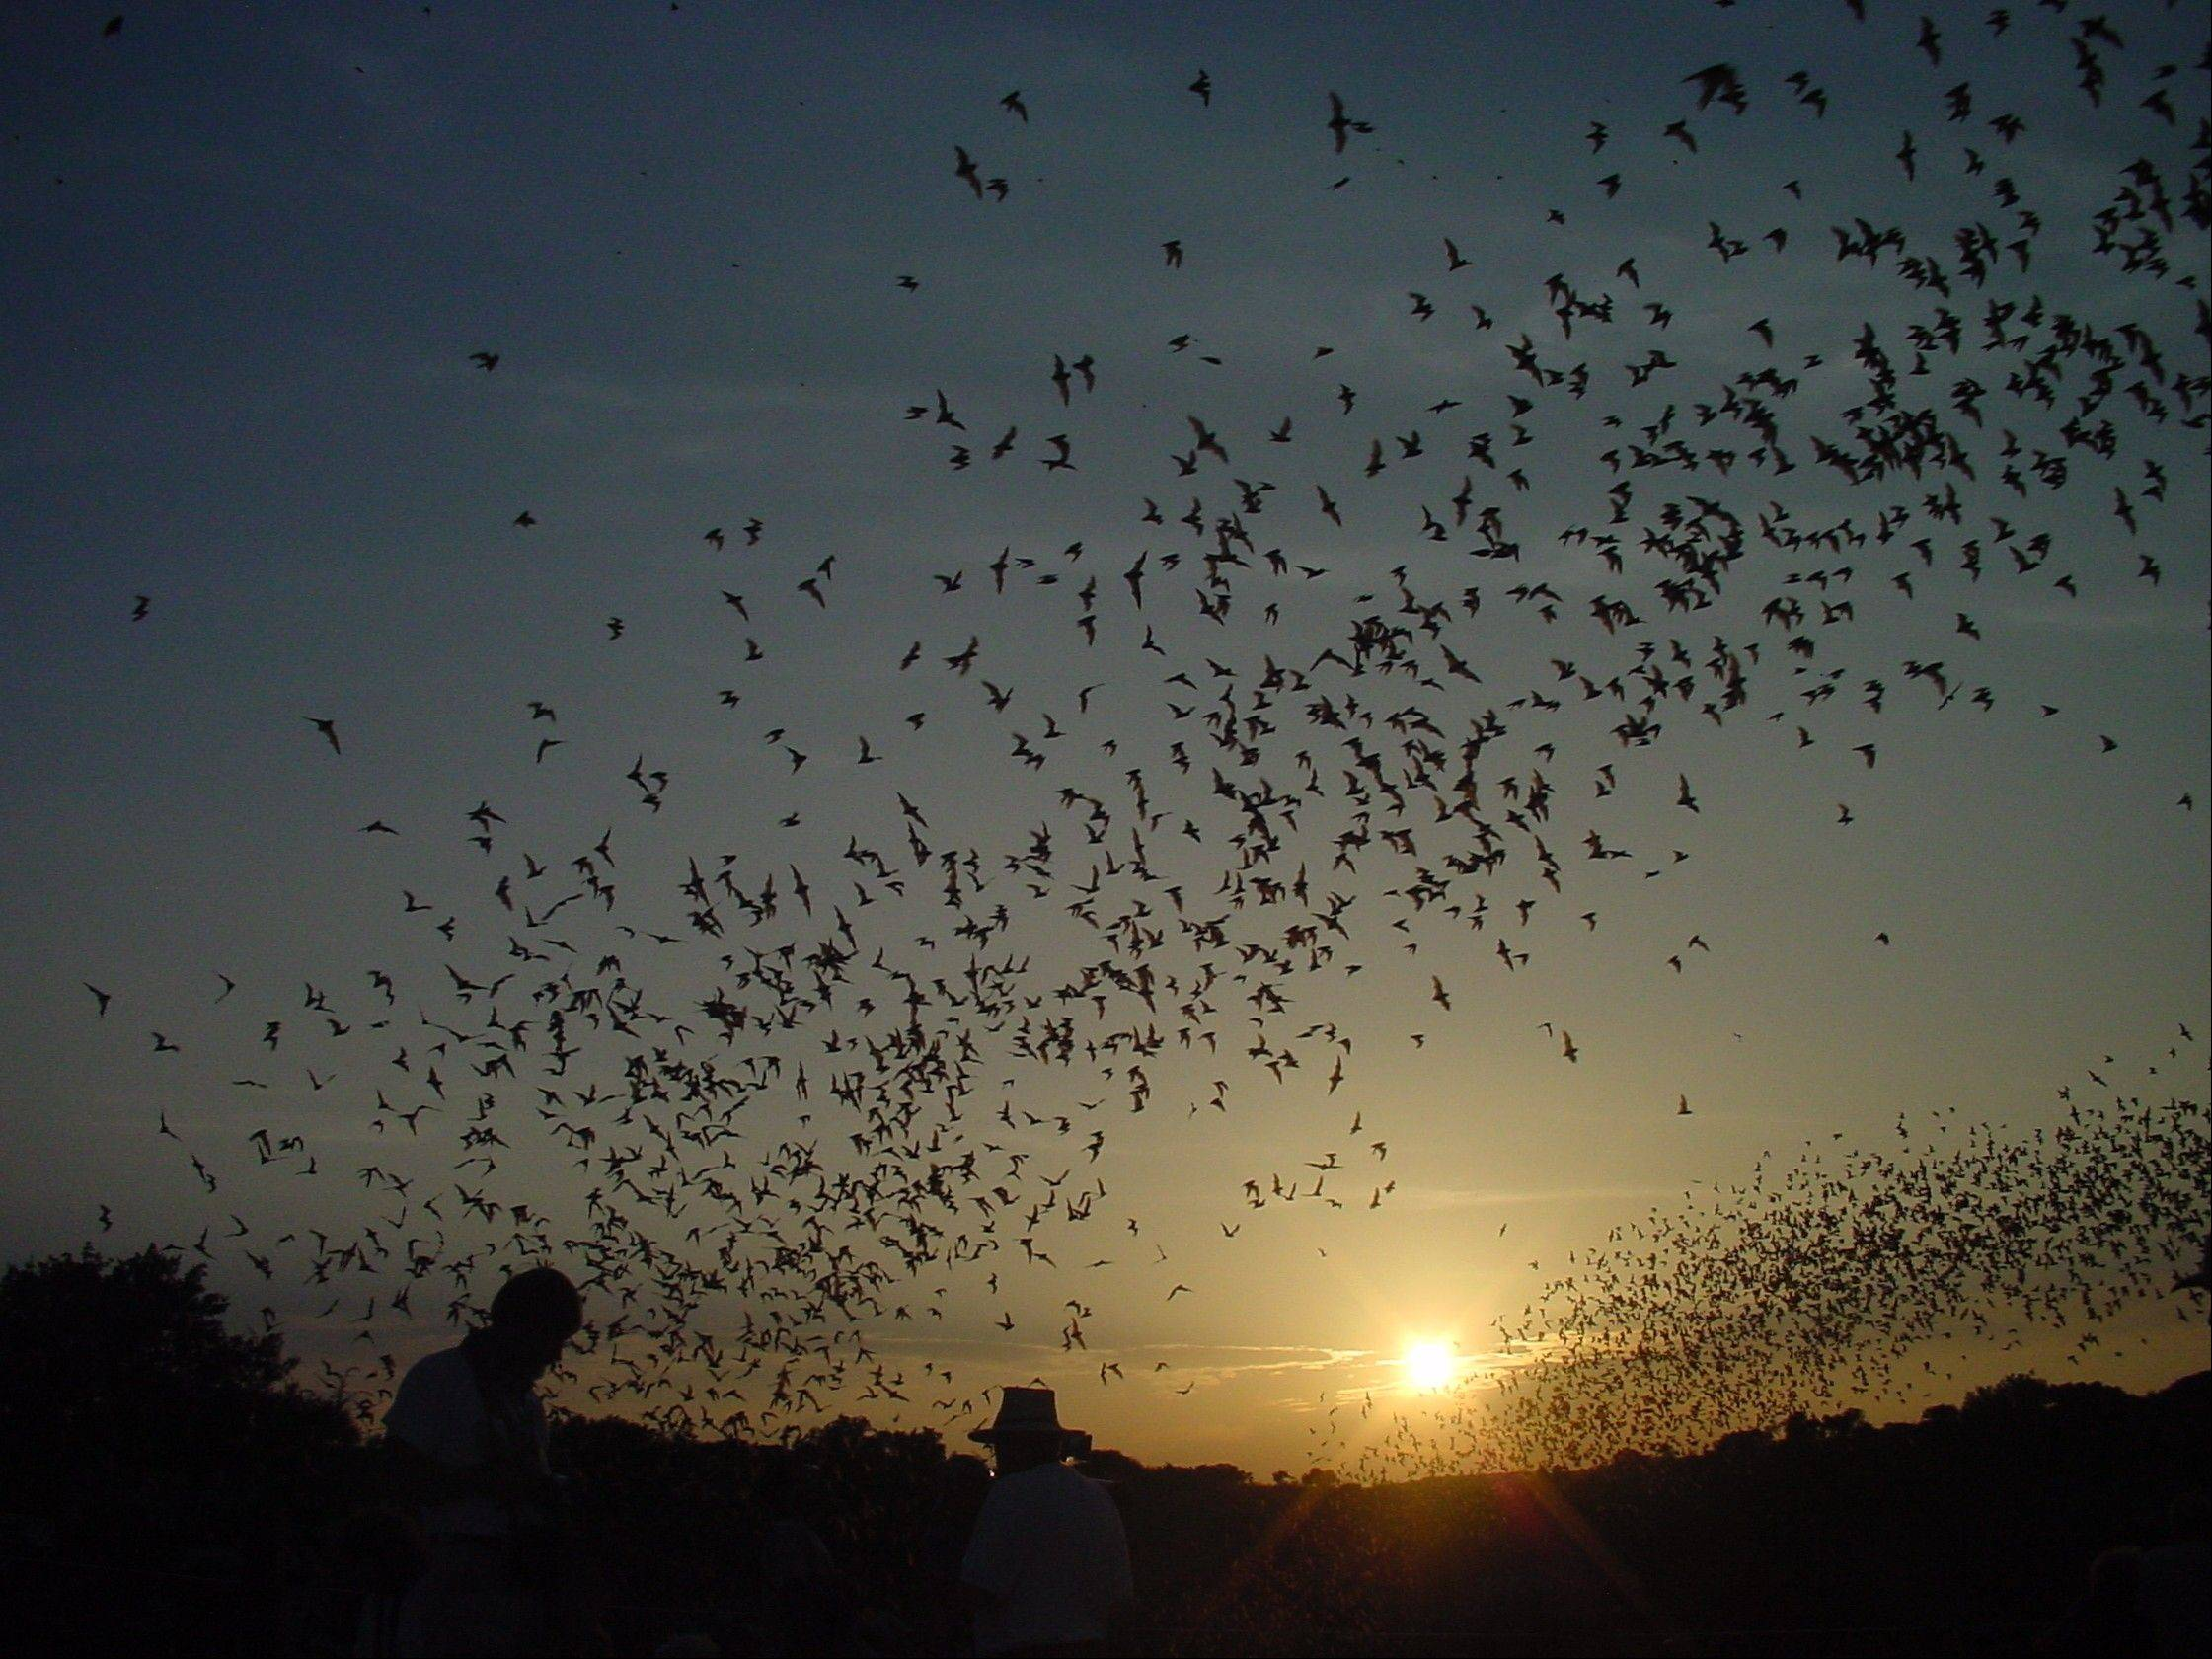 Through mid-October, thousands of bats swarm out of the cave mouth of Carlsbad Caverns National Park in New Mexico.